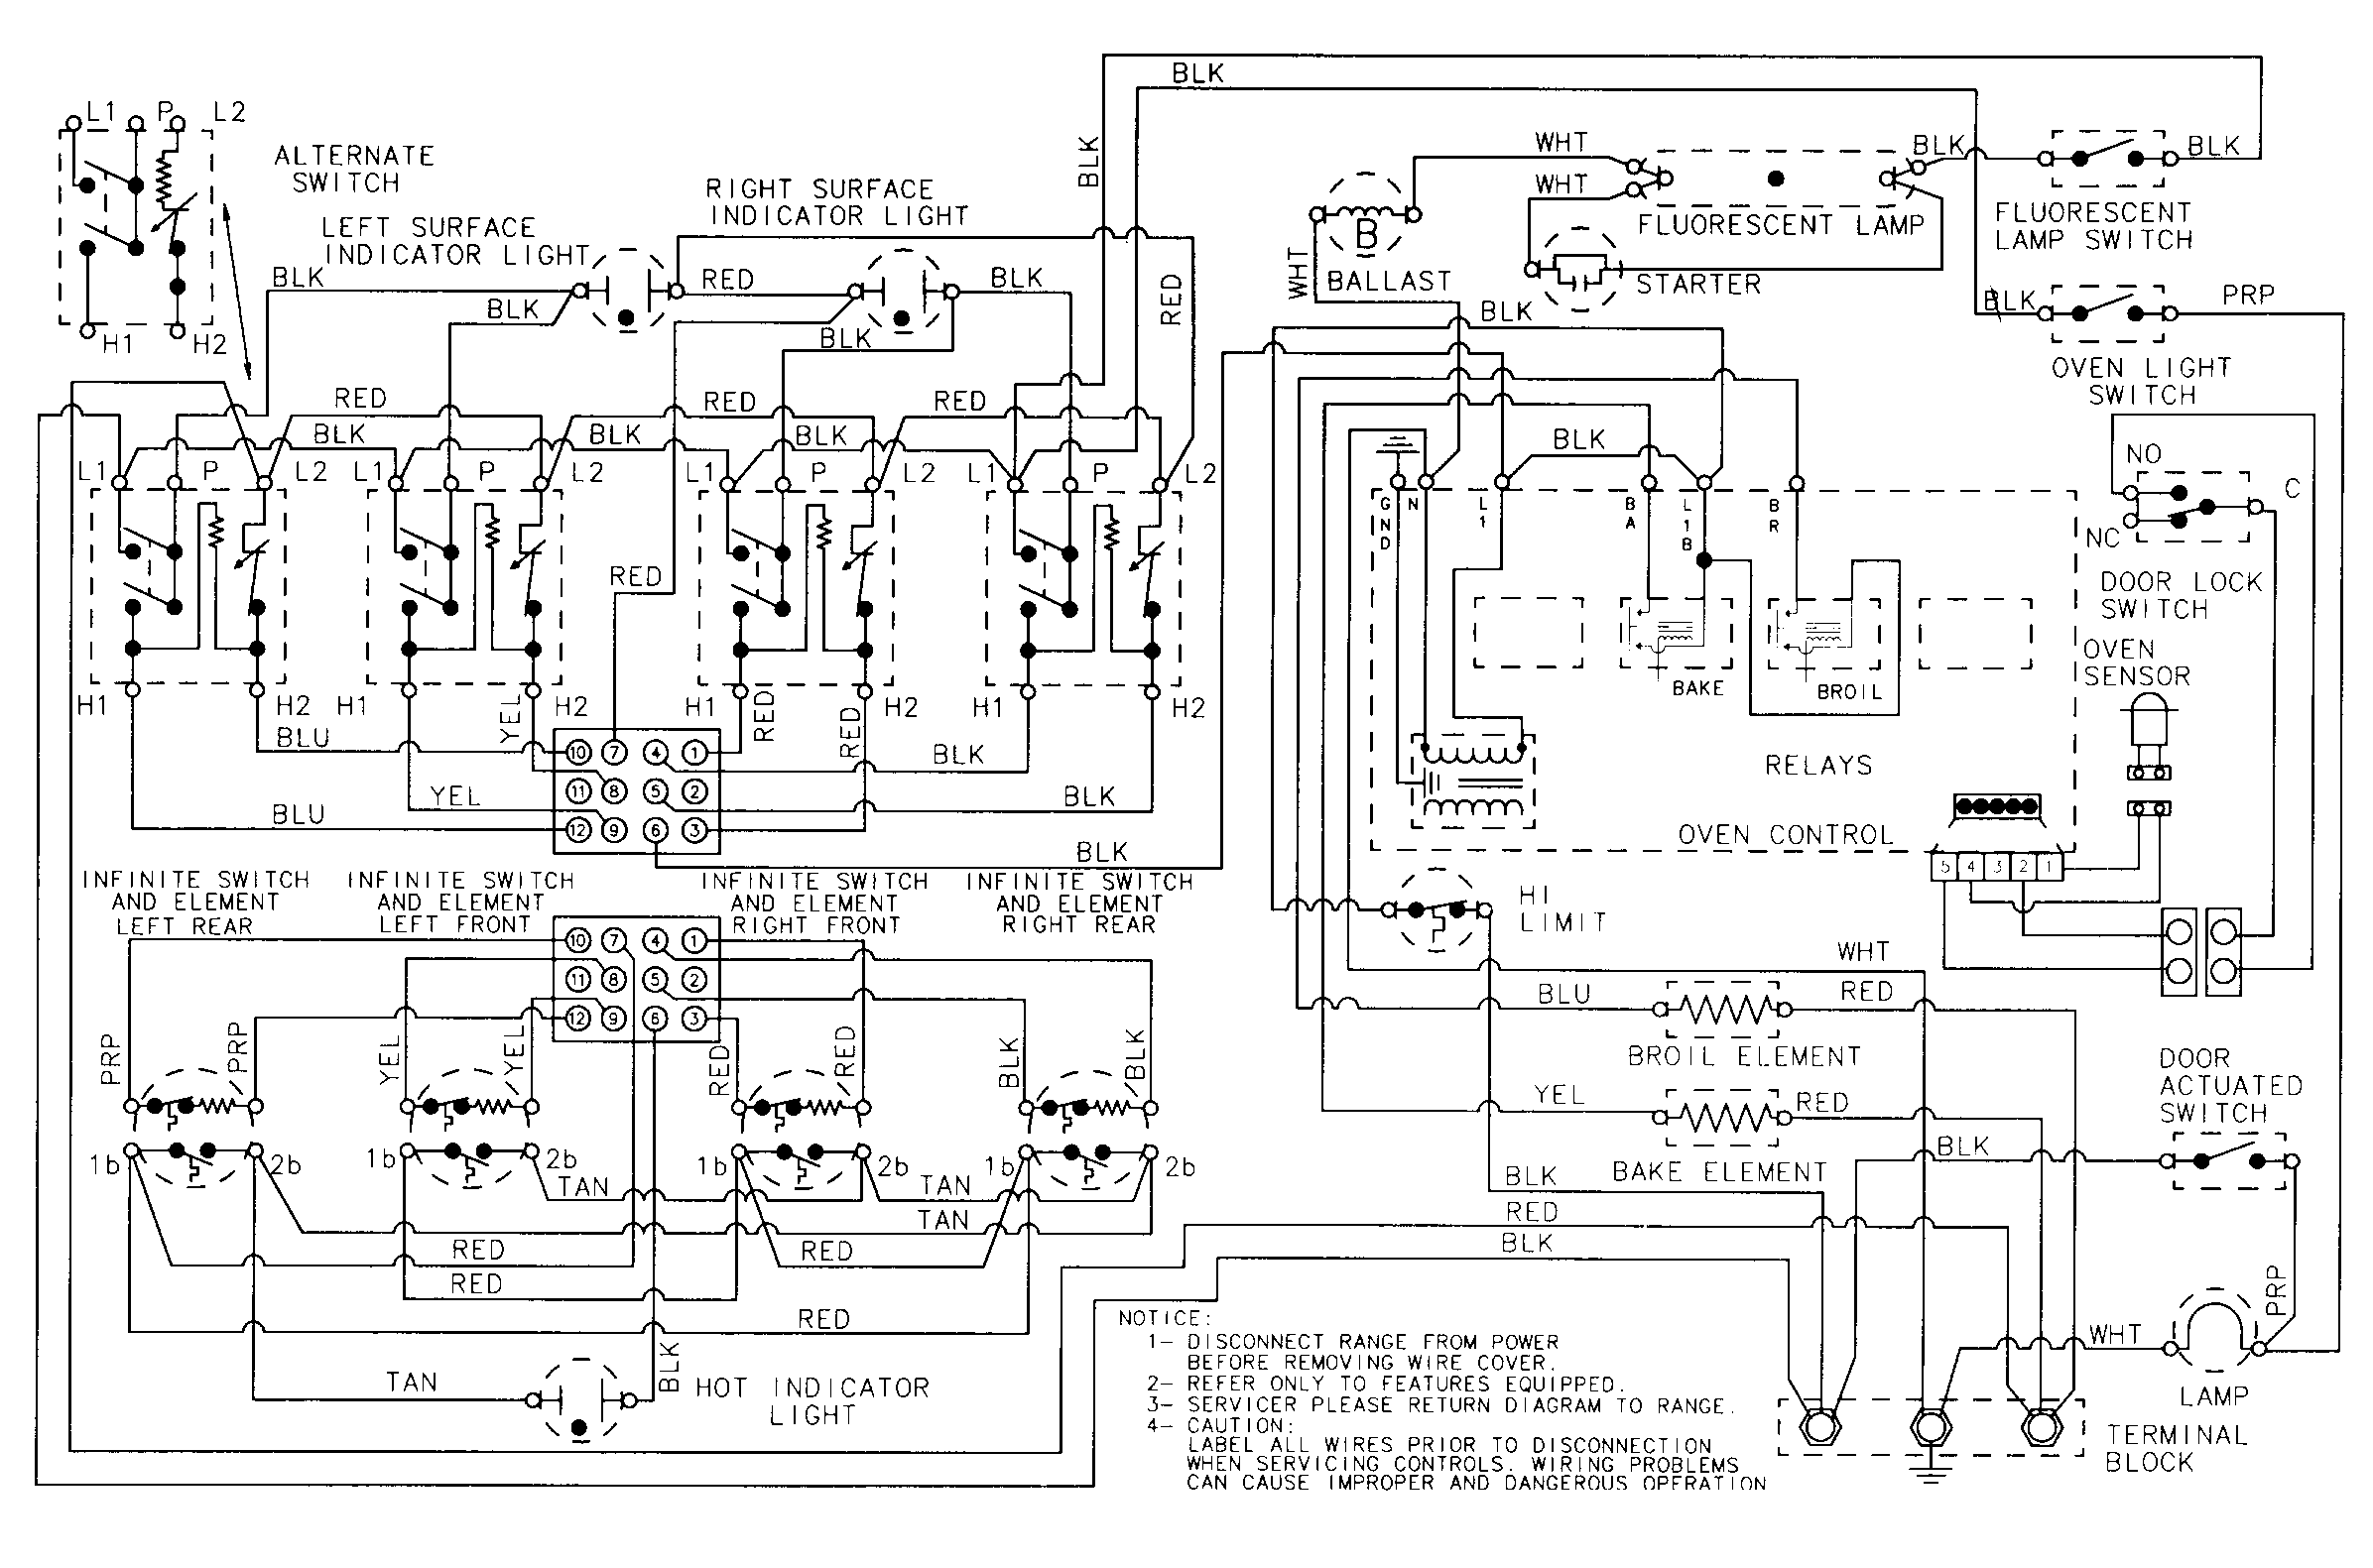 Dryer Wiring Diagram Frigidaire Search For Diagrams Harness Whirlpool Dishwasher Control Board Schematic Affinity